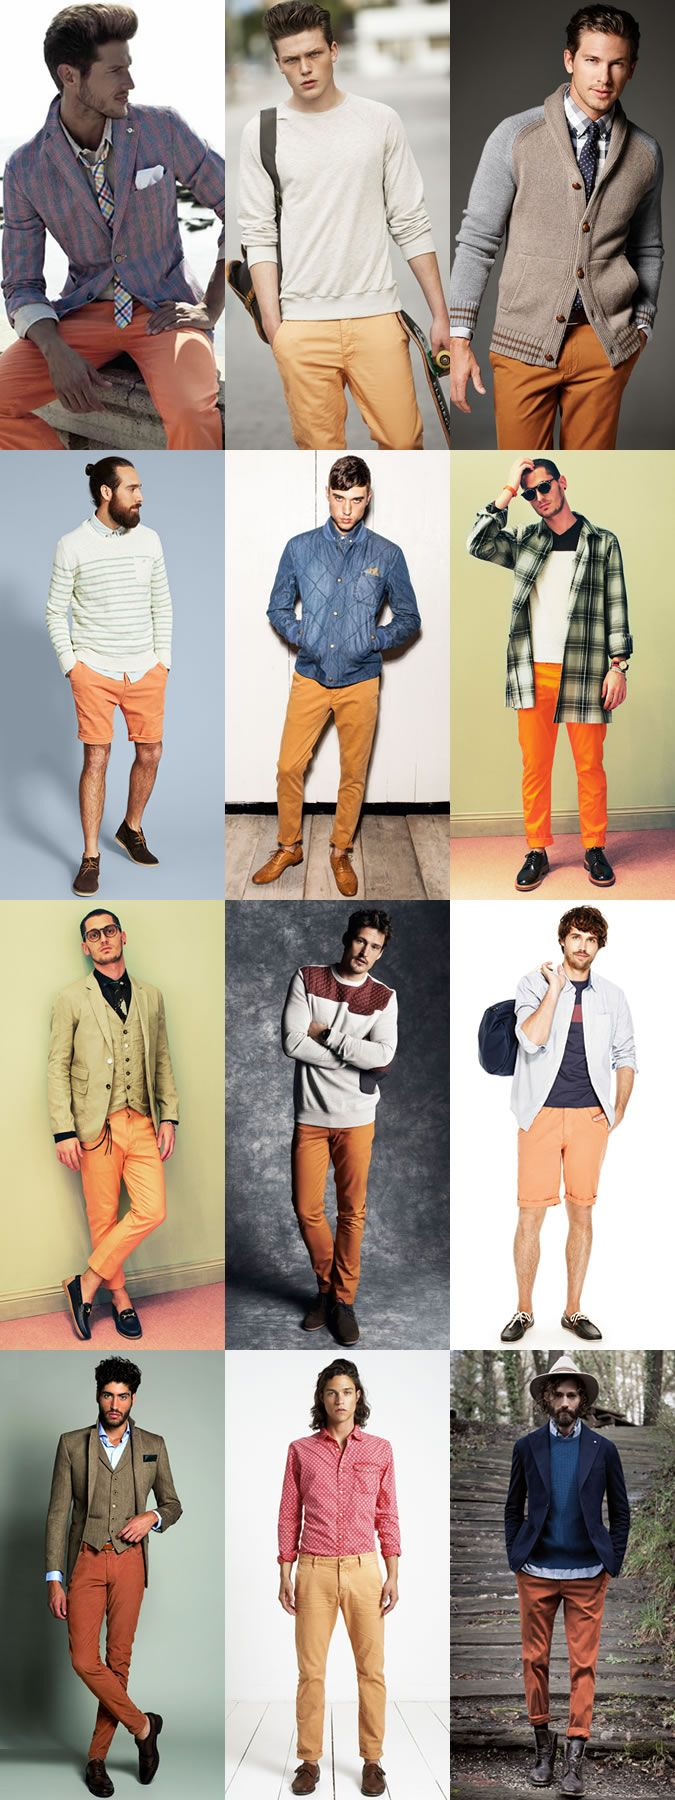 Wearing 2014 Autumn/Winter's Big Colour Trend Now: Orange in Legwear Lookbook Inspiration